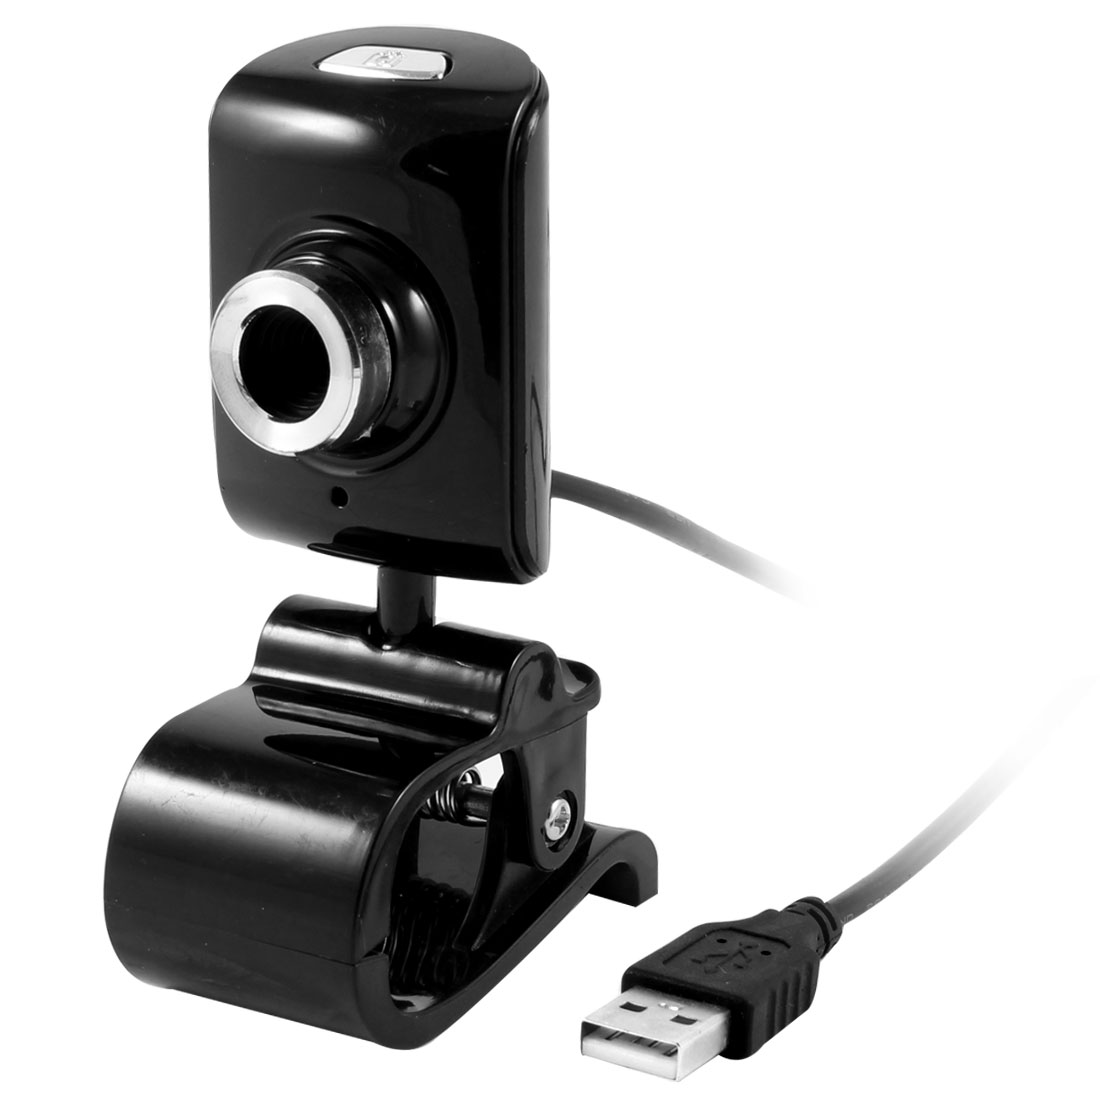 Black Plastic Housing USB 2.0 Clip Web Camera Webcam for Laptop Desktop PC